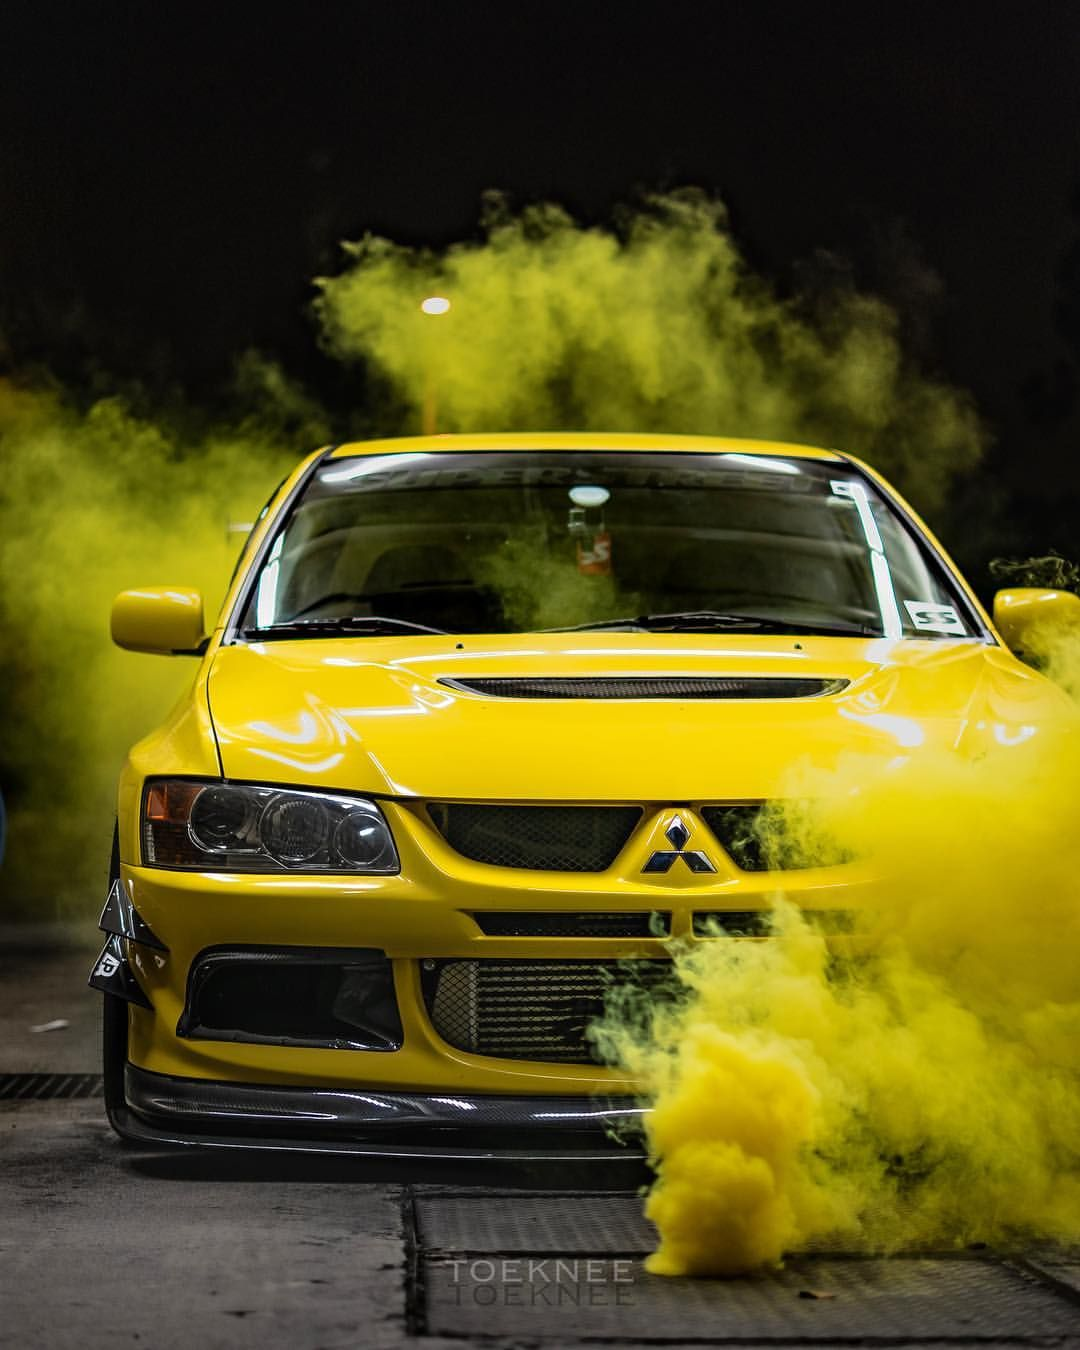 Mitsubishi Lancer 22006 Wallpaper: These Smoke Shots Are Very Interesting To Play Around With